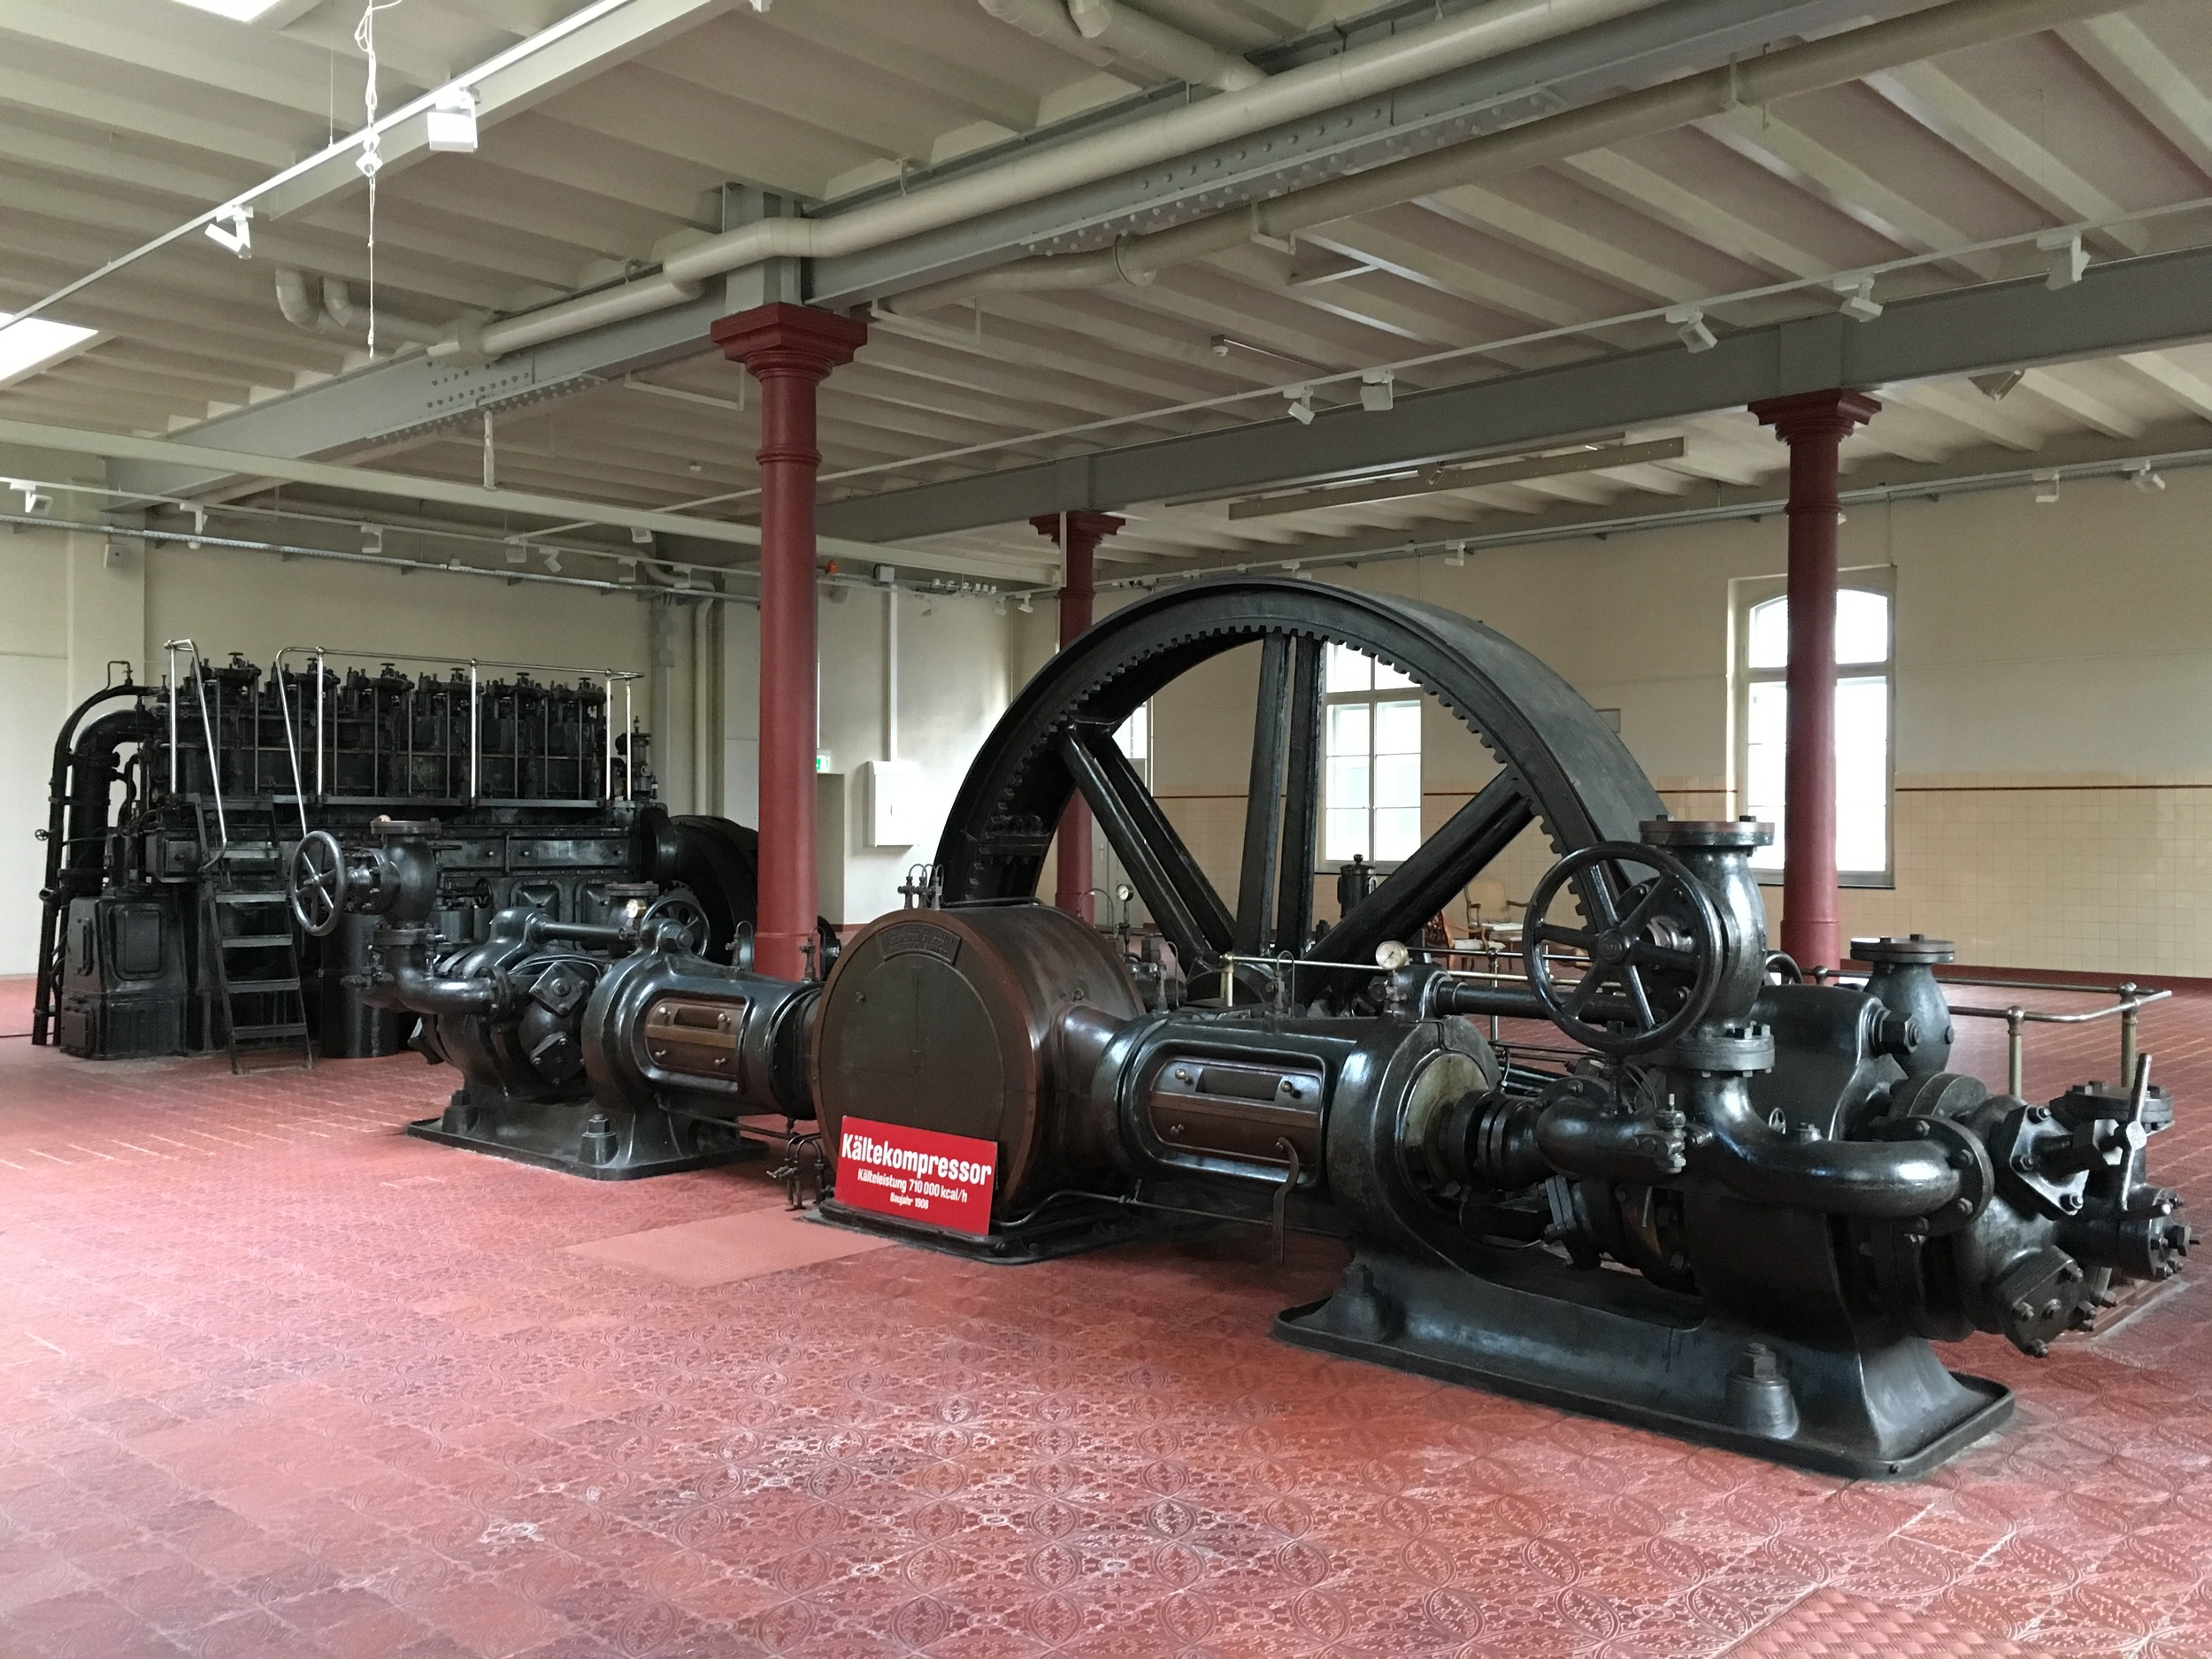 Machine hall showcasing the cooling compressing used in the old brewery. / © Eileen Hsieh